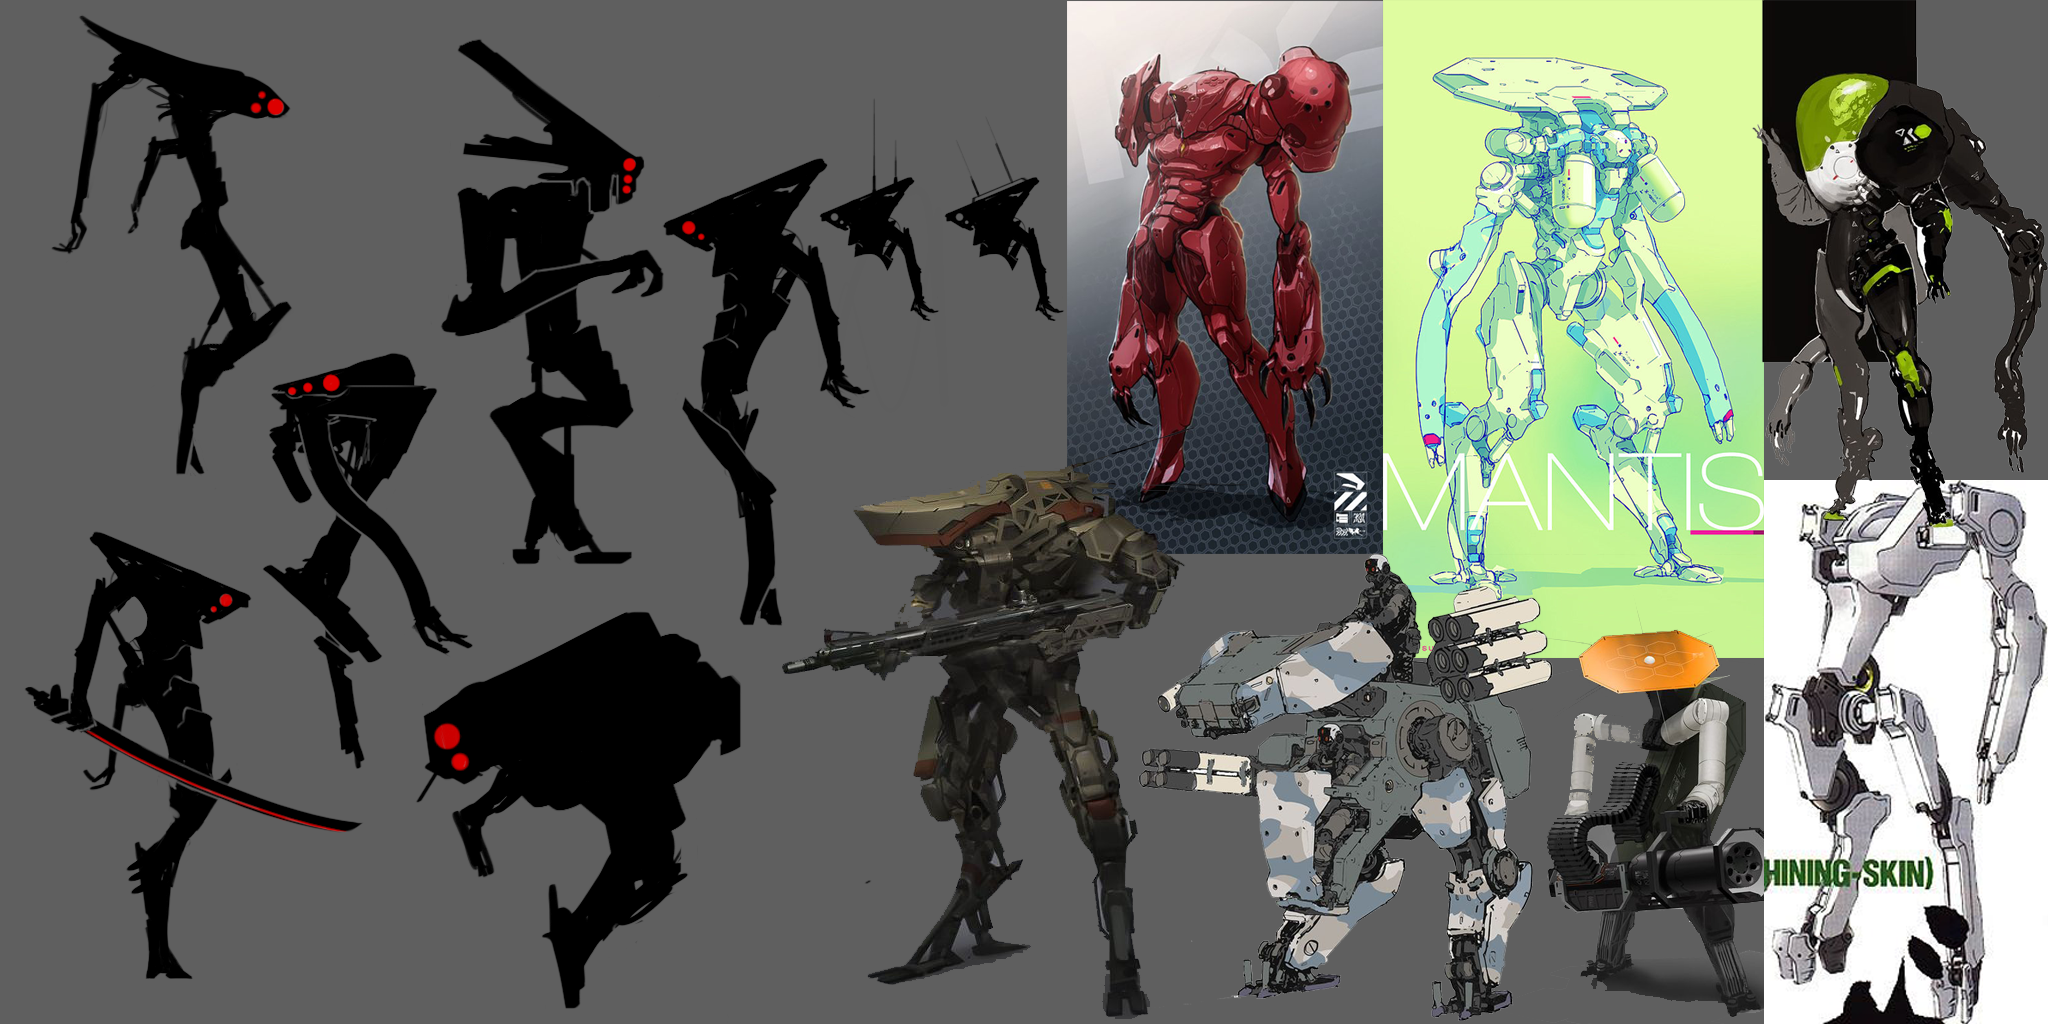 Initial concepting for ideas for the 3rd boss. We knew we wanted some sort of bipedal mech.